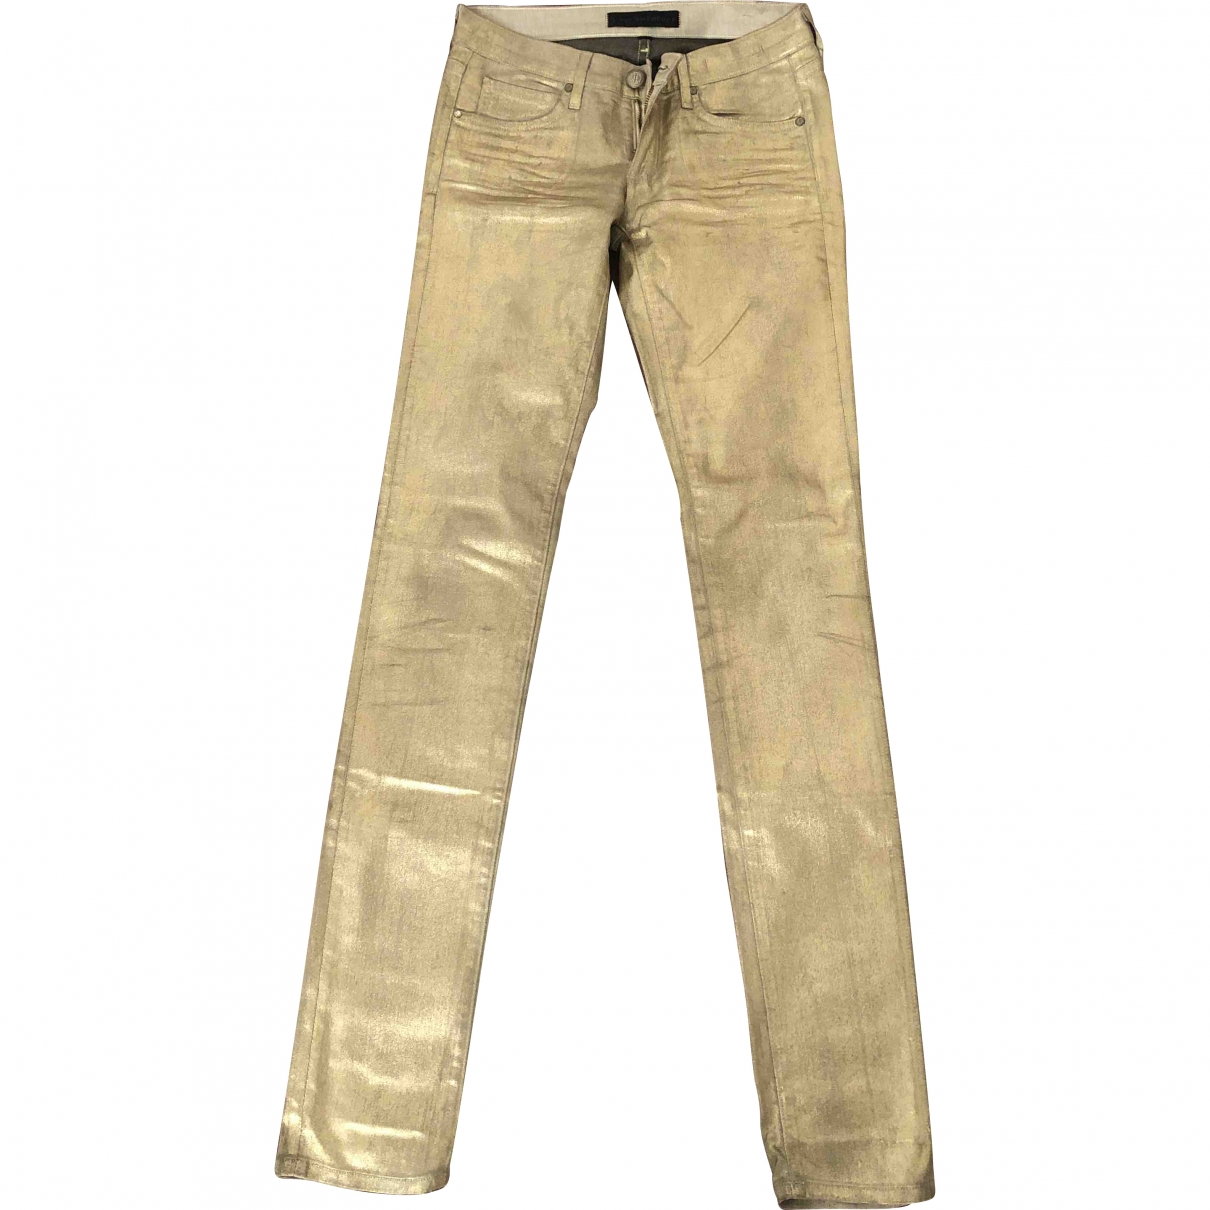 Juicy Couture \N Gold Cotton Trousers for Women S International